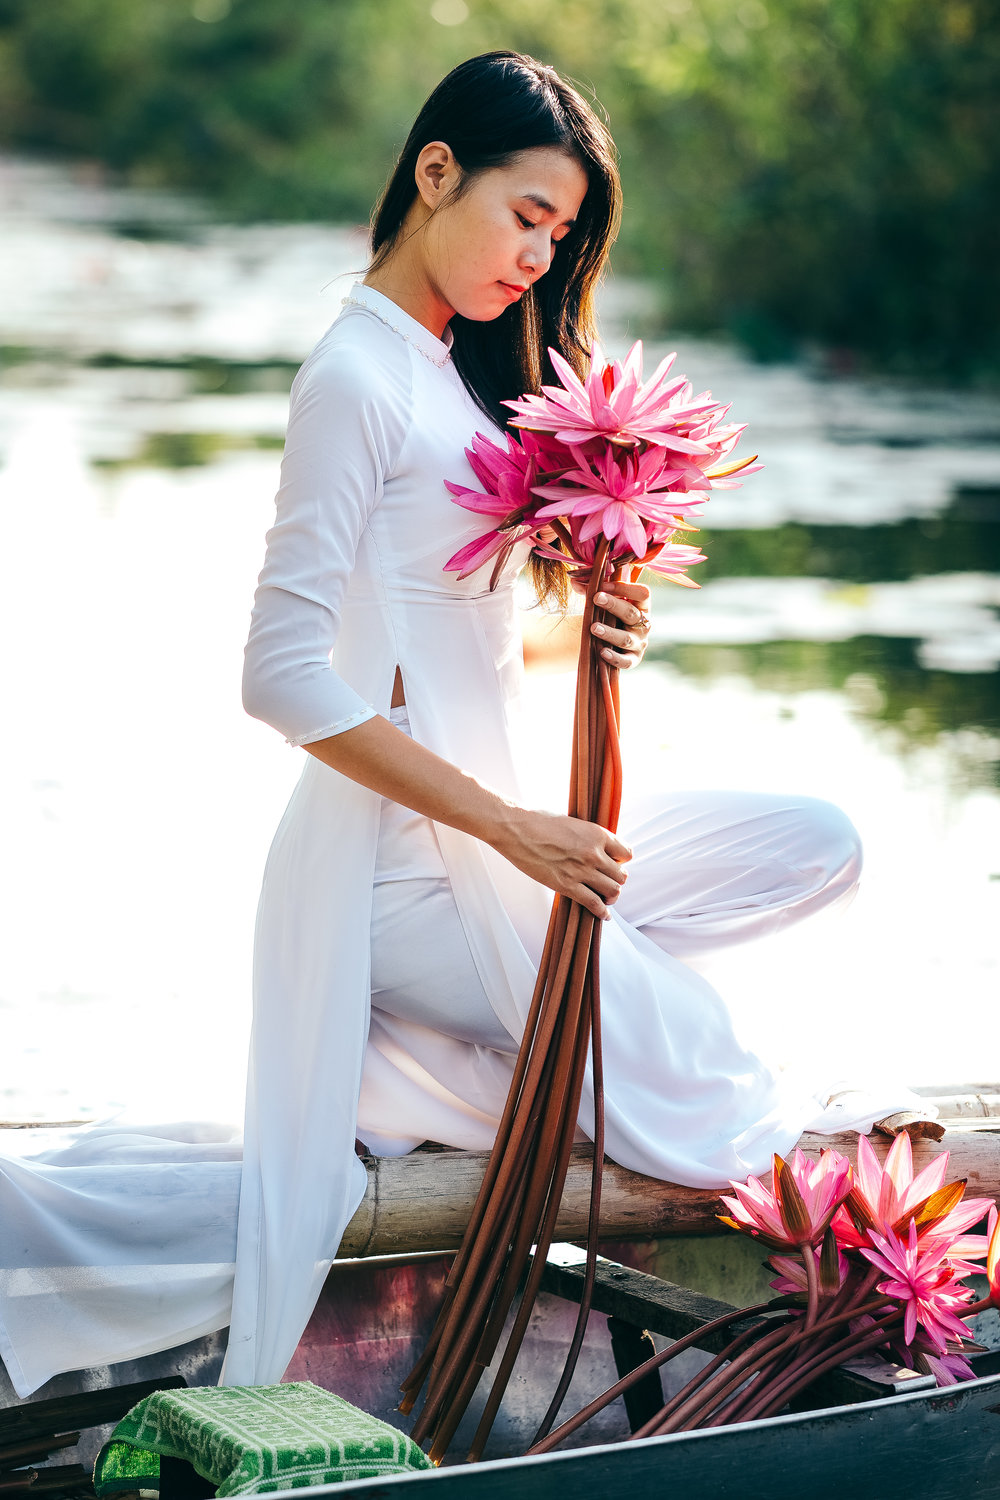 Vietnamese girl with red lotus in hands